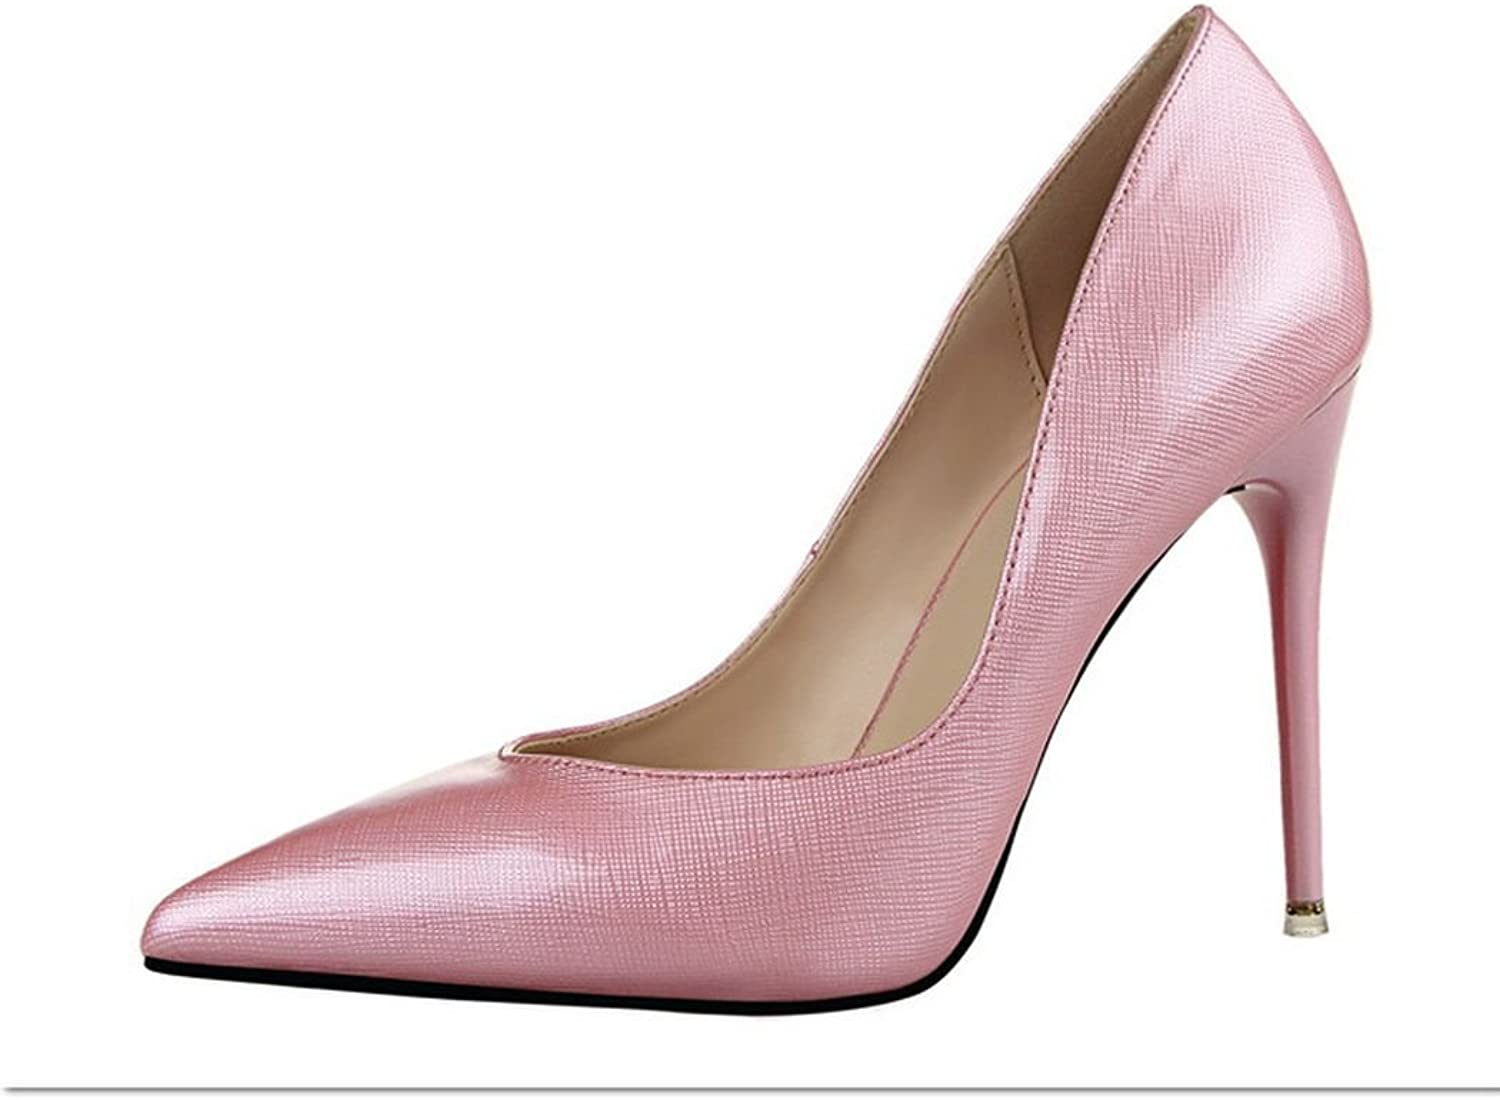 Ryse Women's Fashionable Noble Leather Elegant Temperament High Heels Pointy shoes